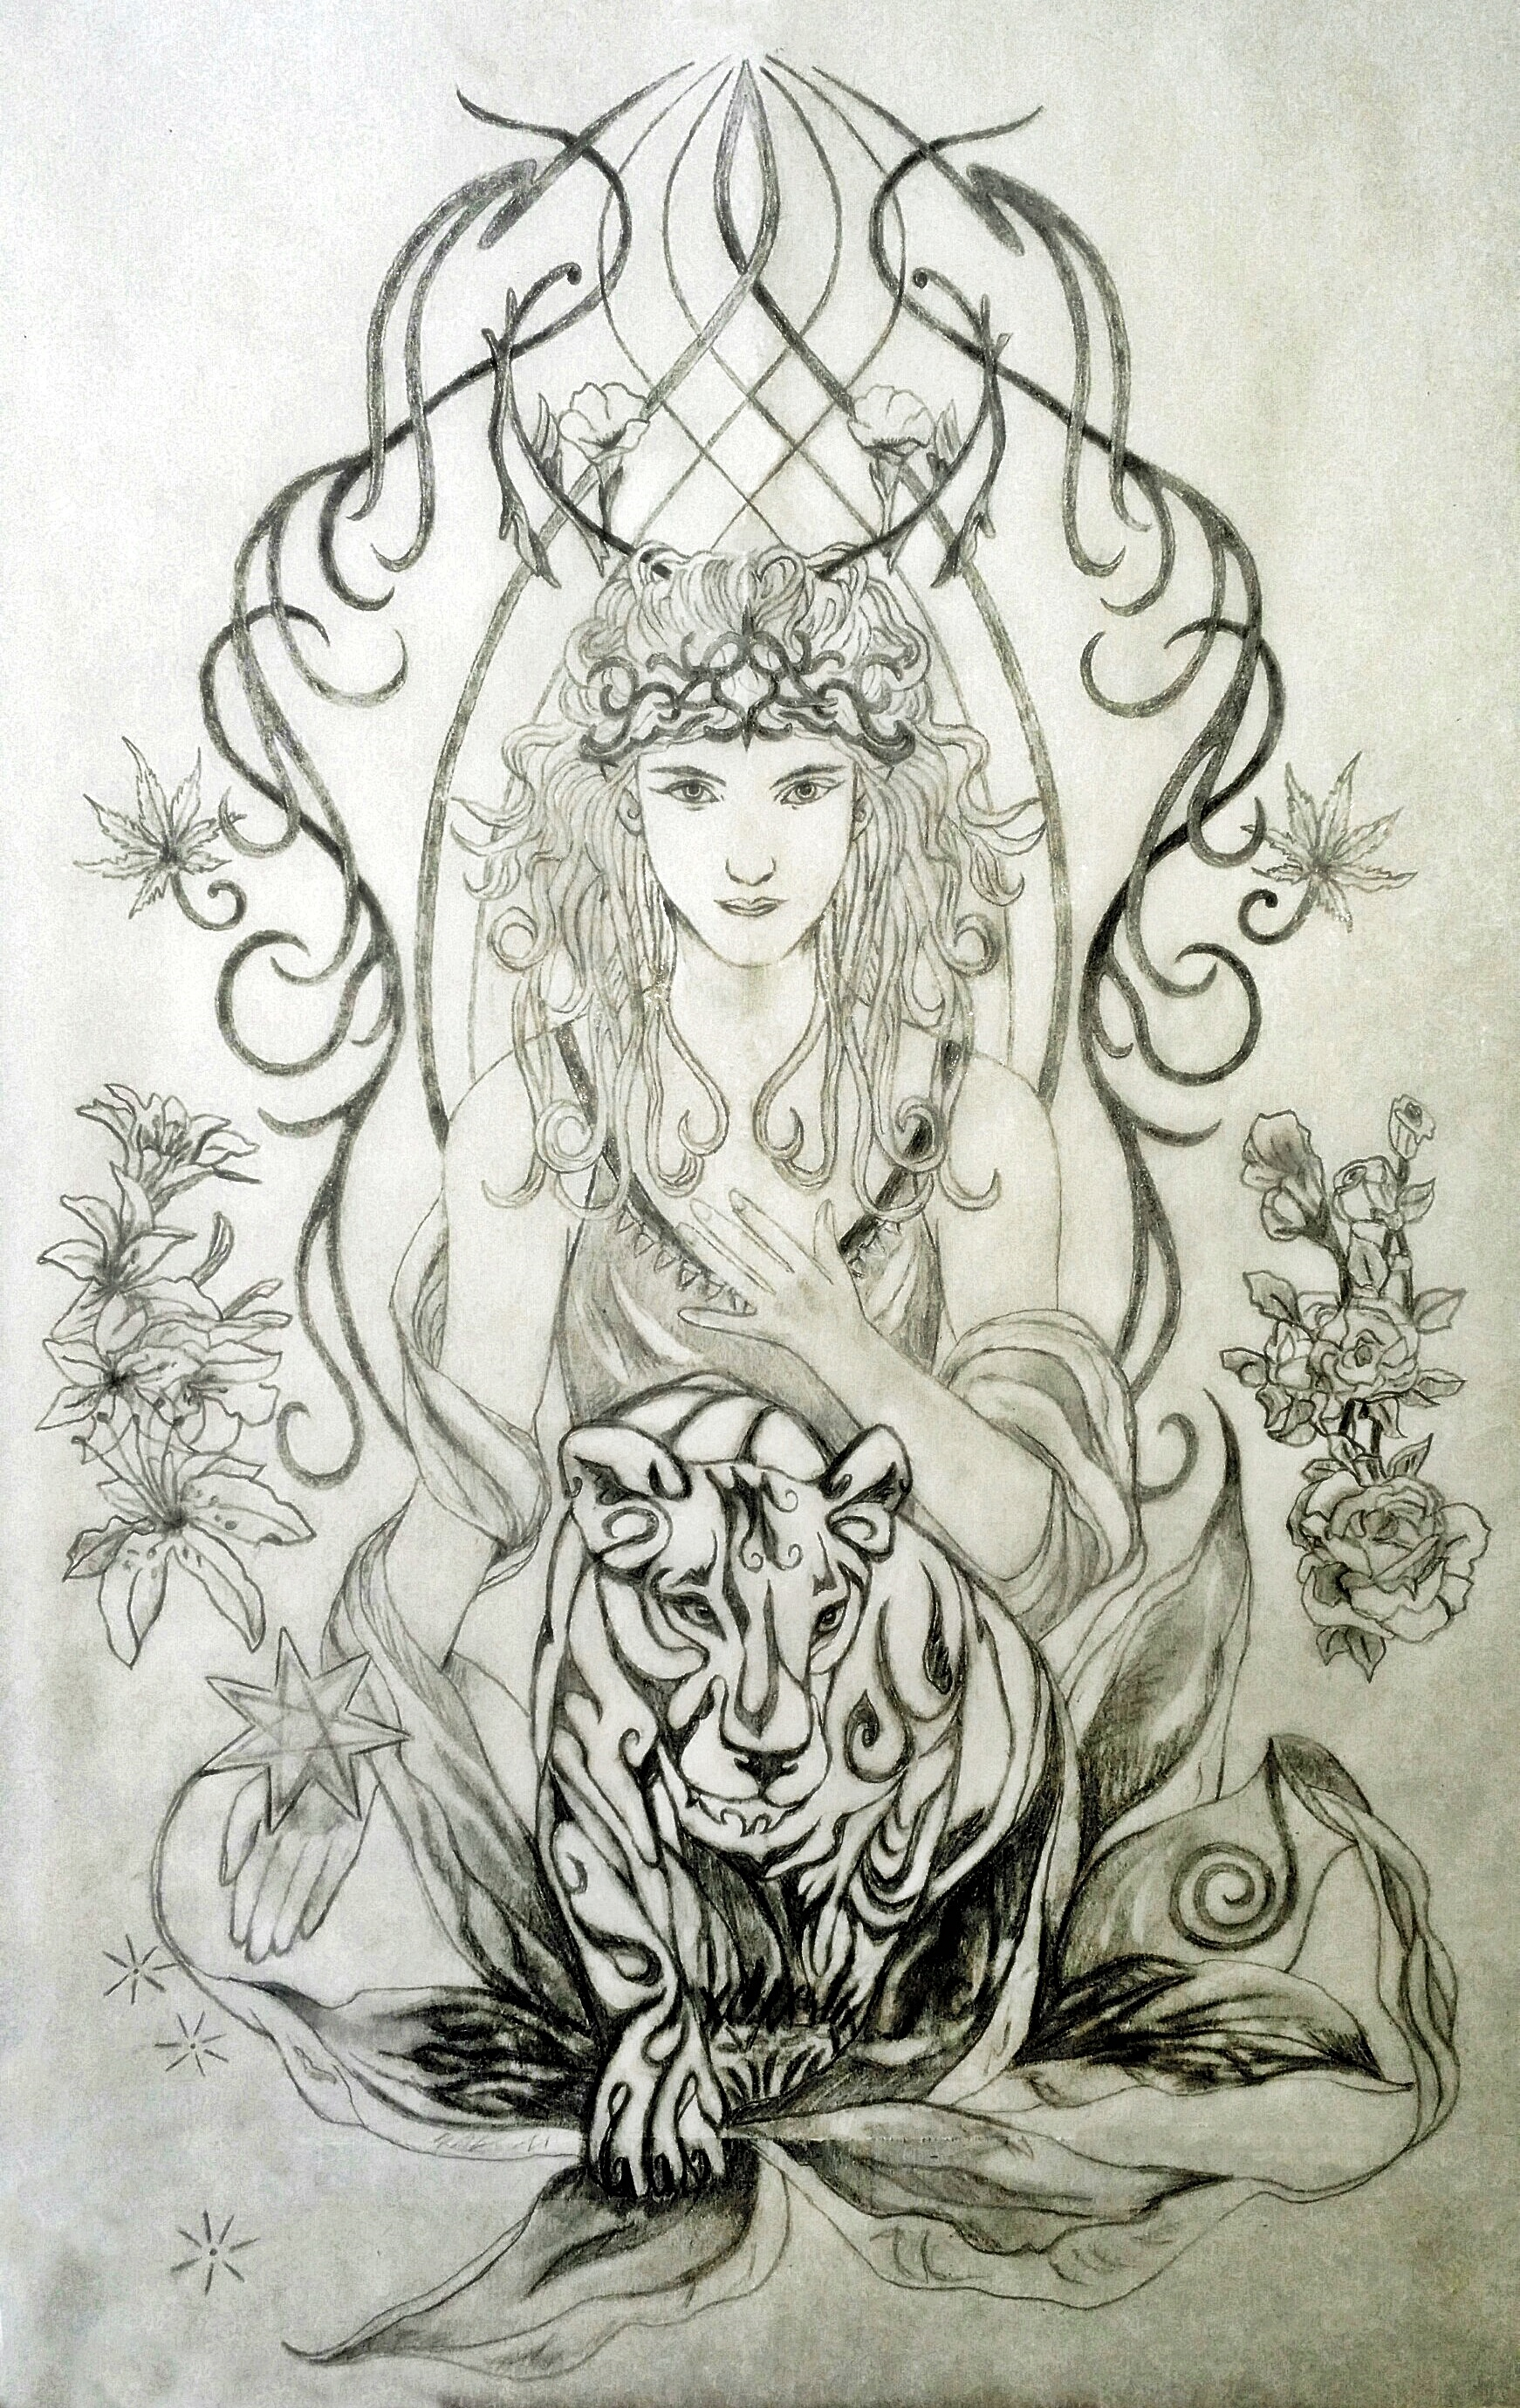 Taurus tattoo: description, meaning, sketches